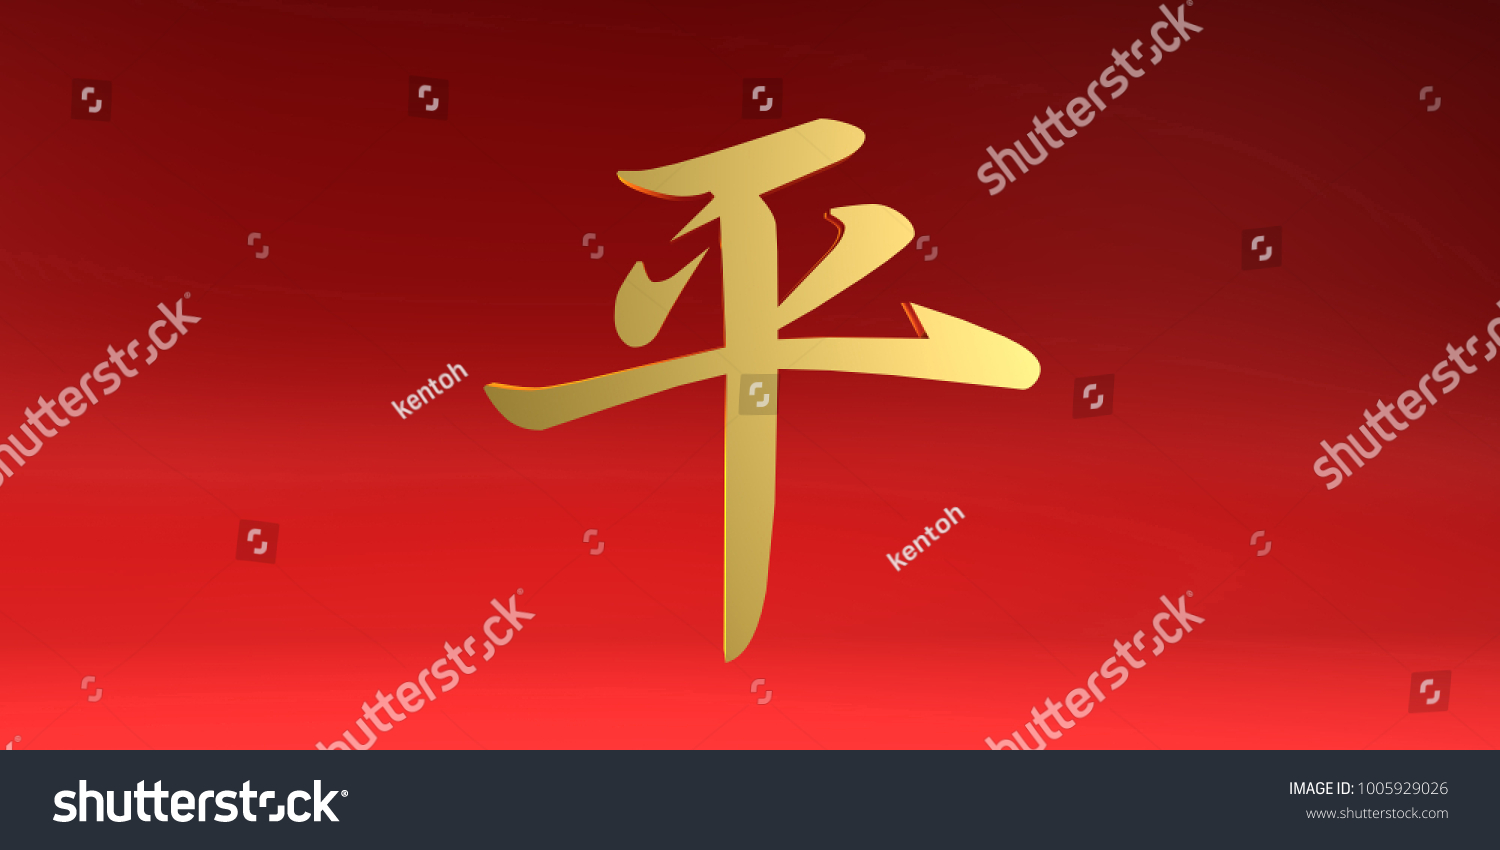 Peace Chinese Calligraphy Symbol Red Gold Stock Illustration